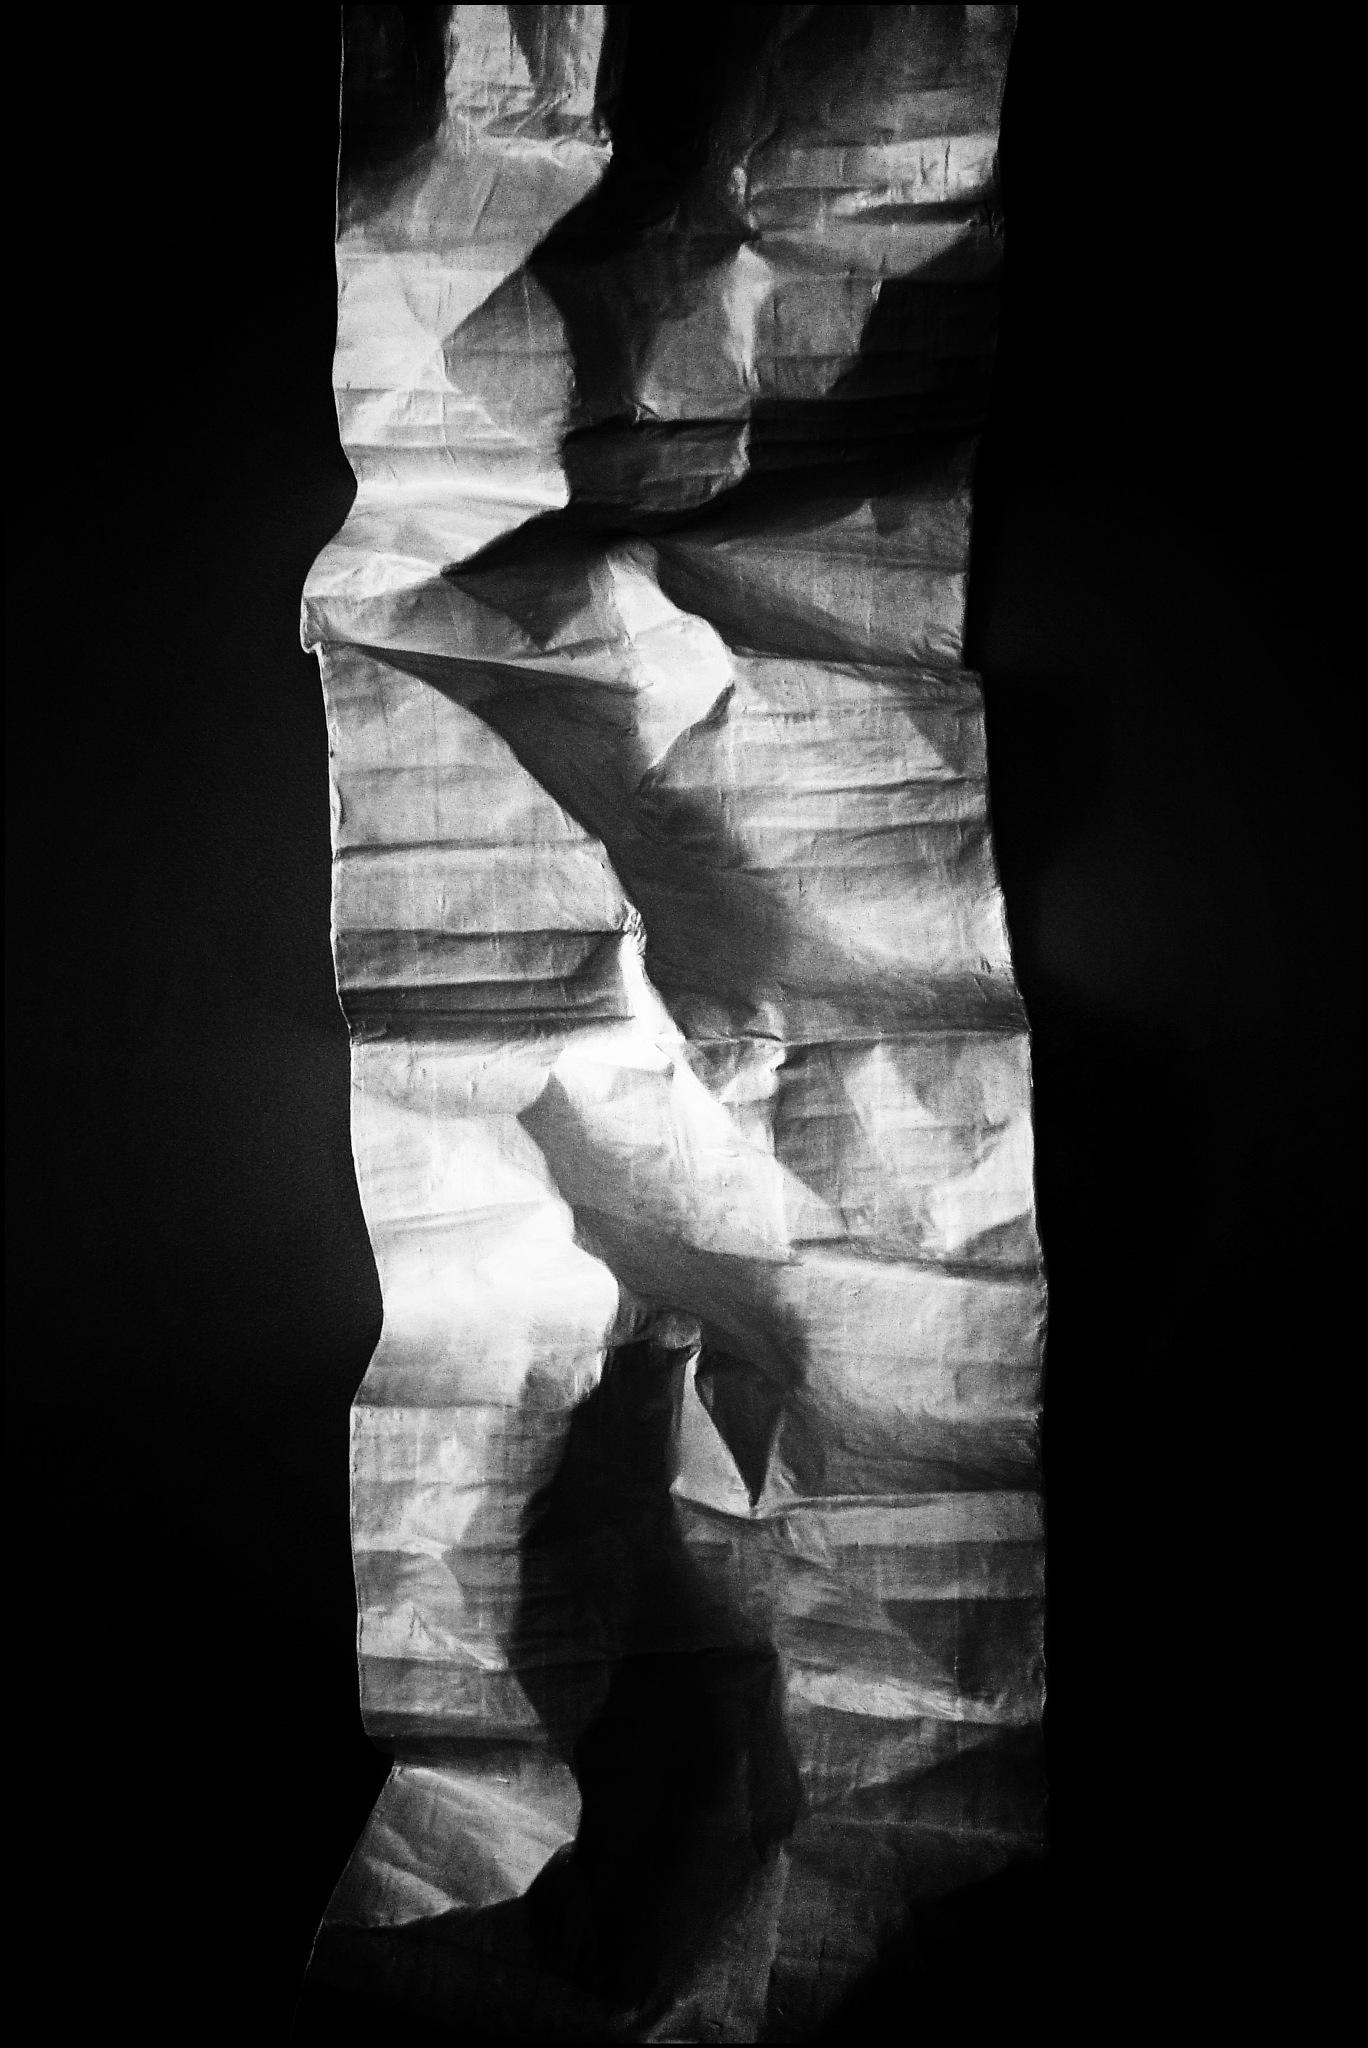 papel by Fred Matos